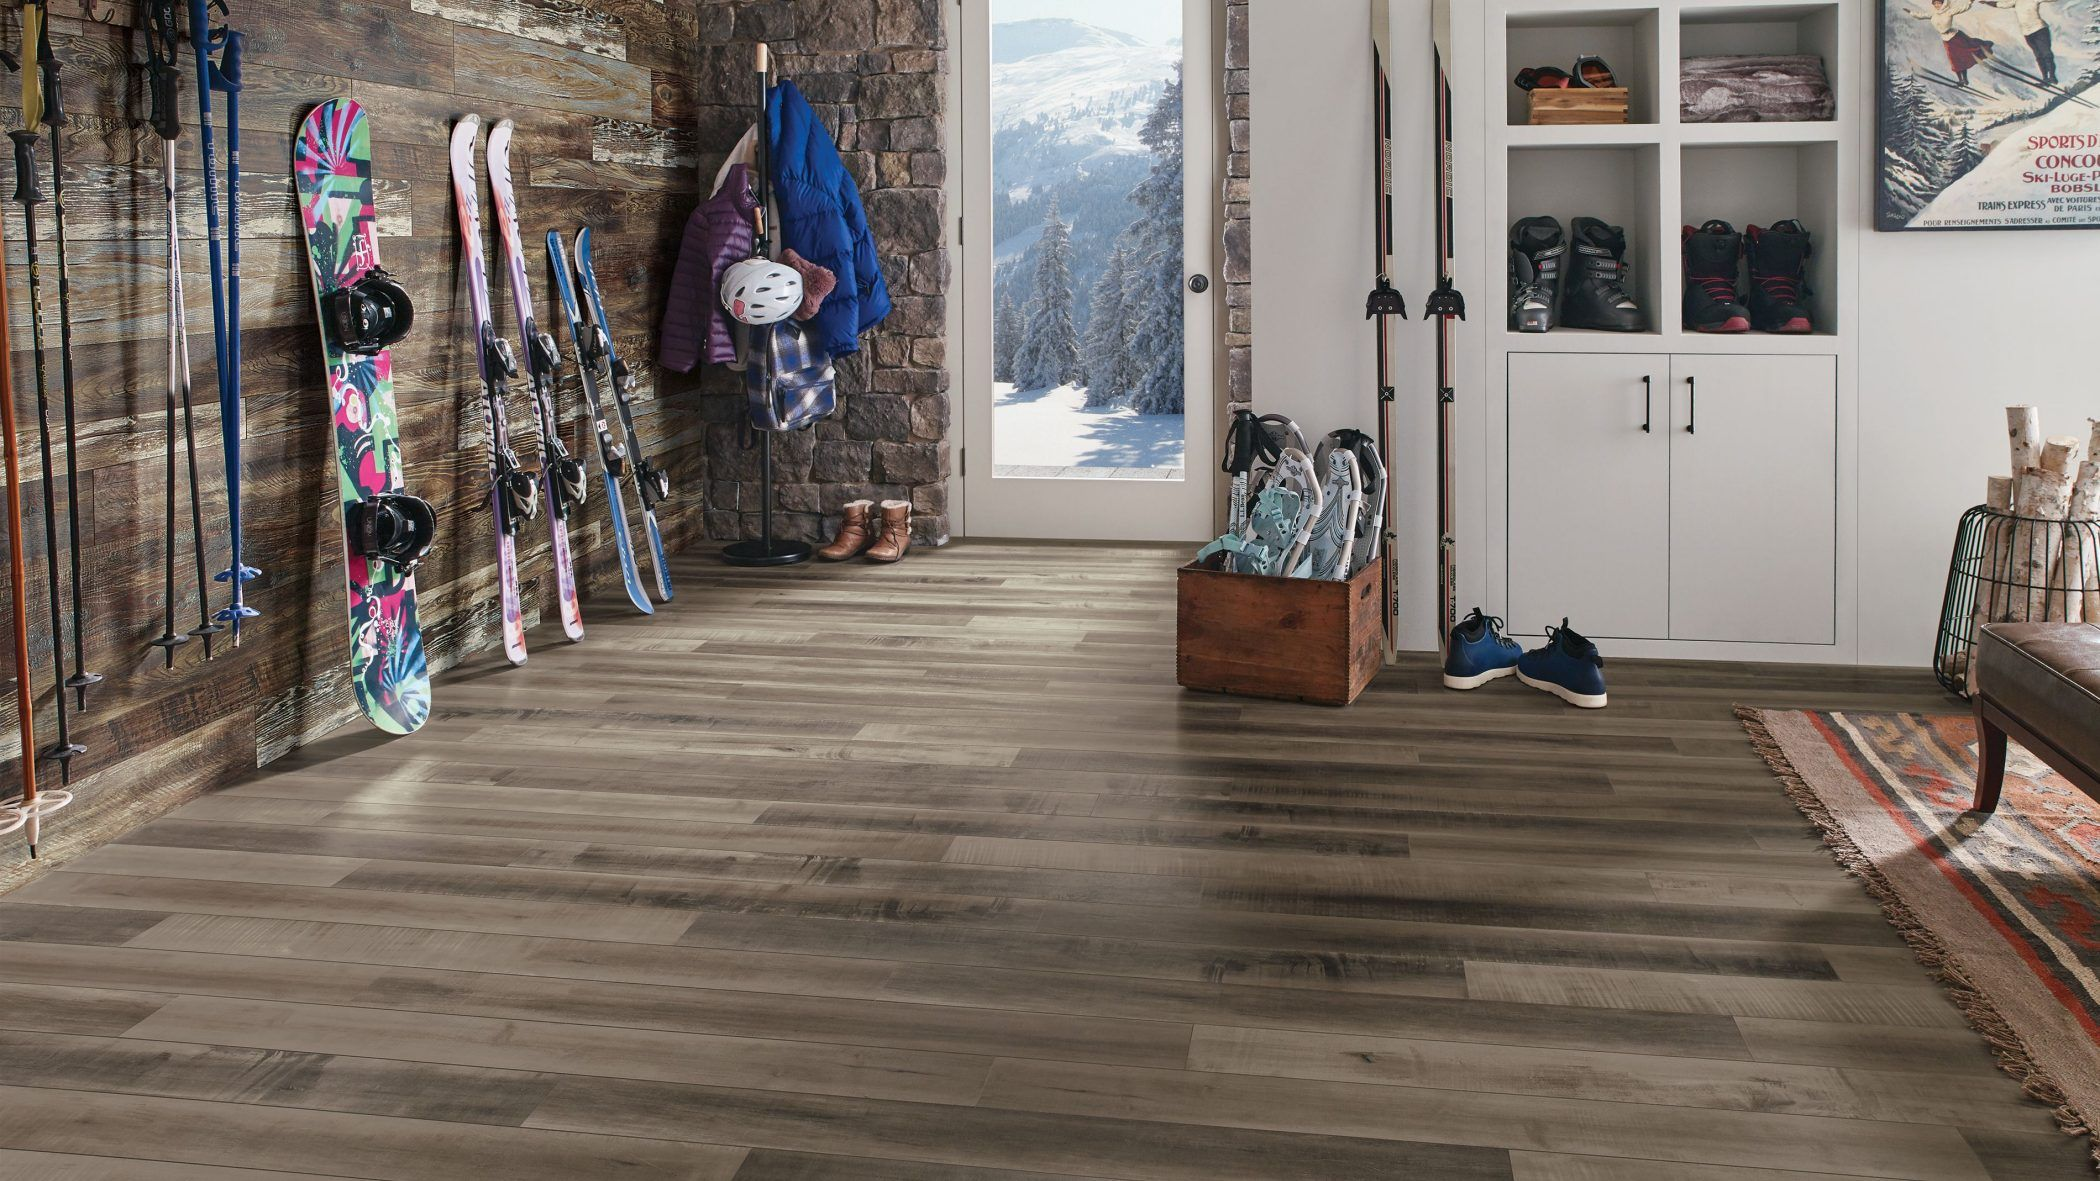 Make sure your floors can hold up to snowy boots and